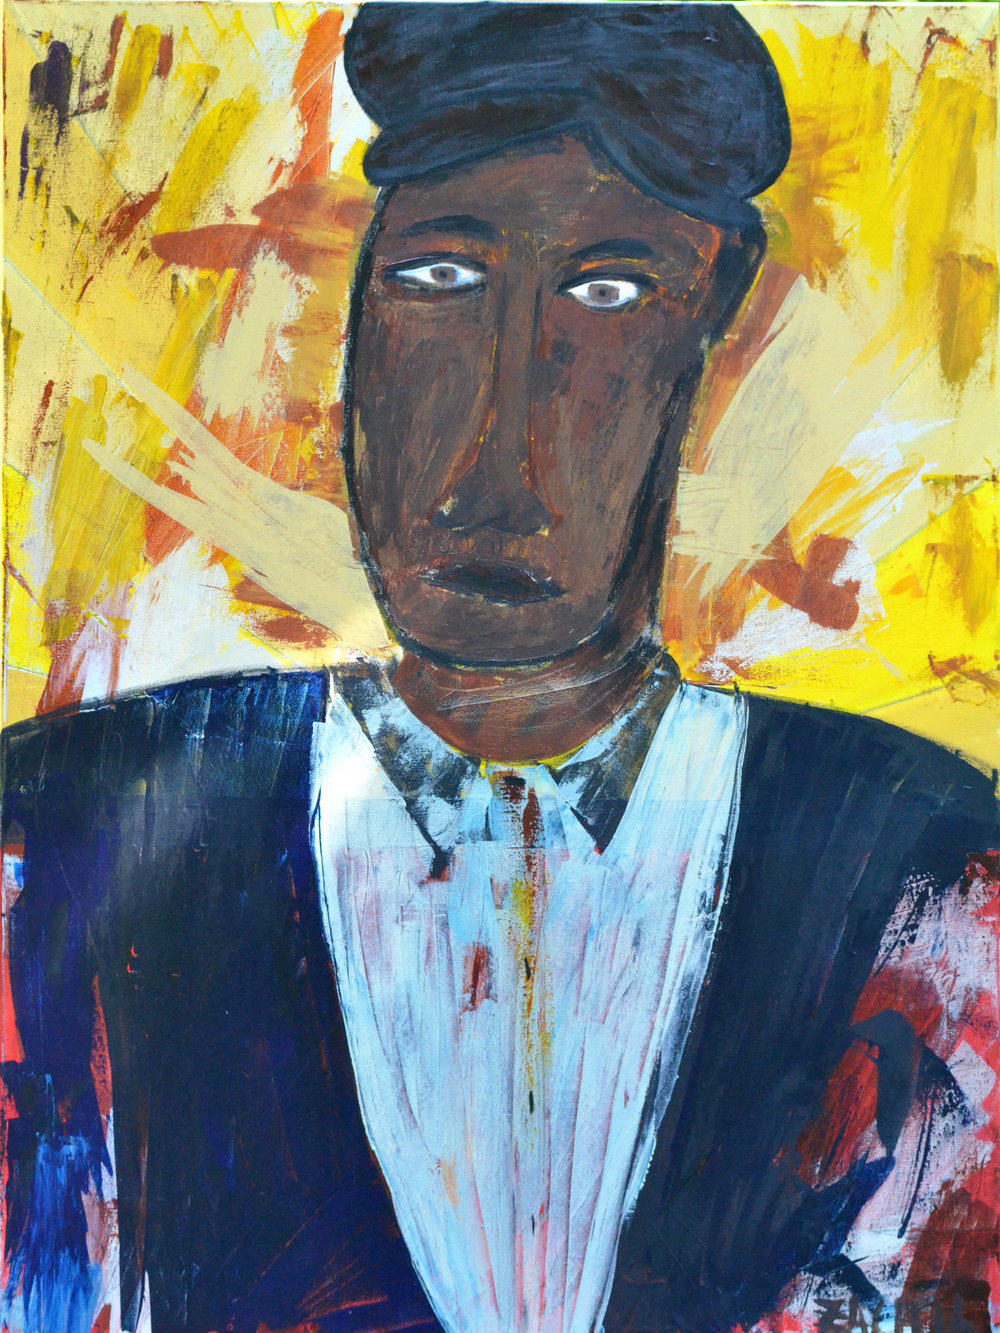 Man in Suit (2016, acrylic, 30 by 40)